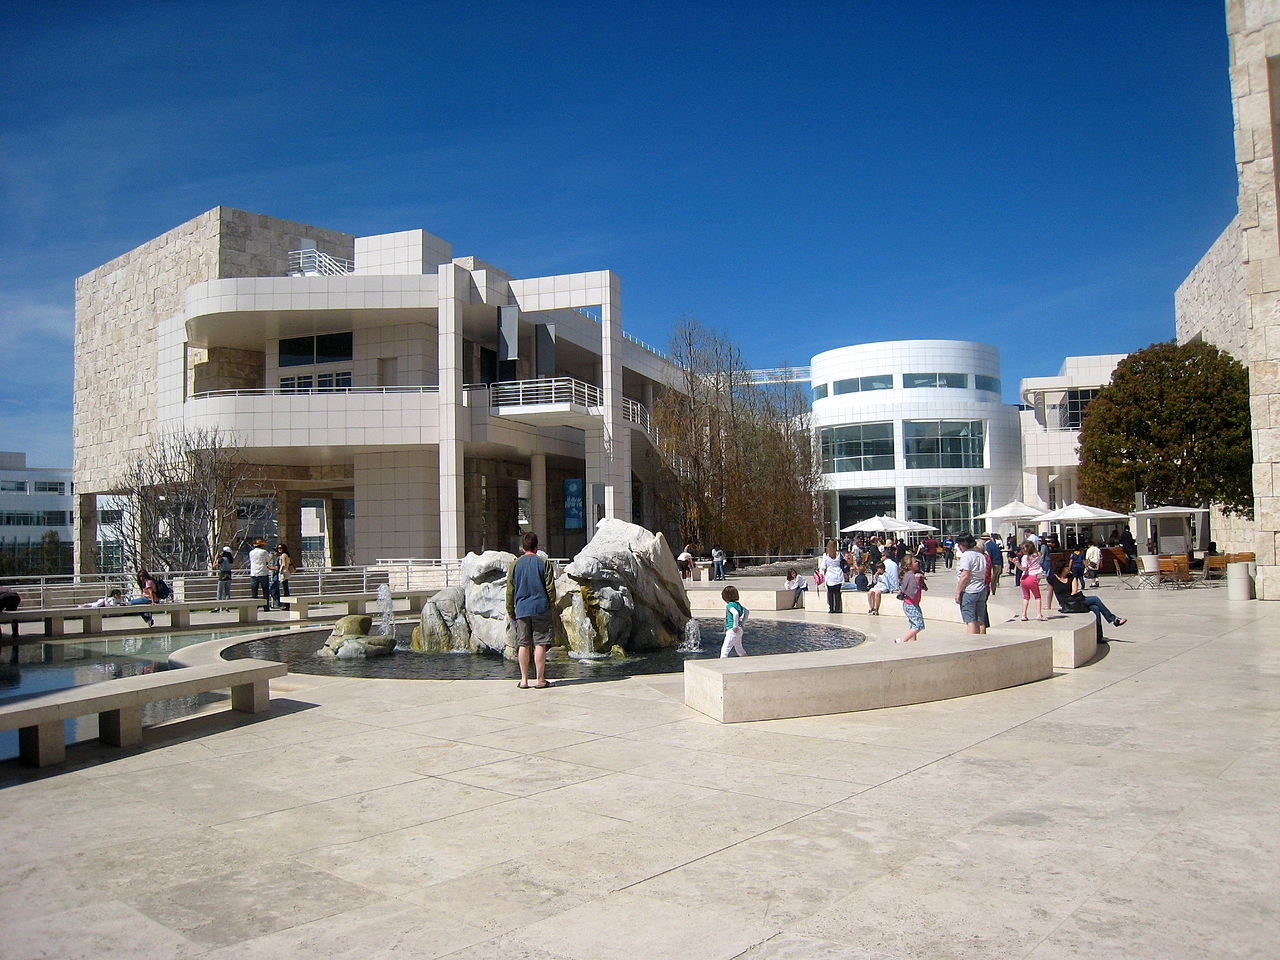 The Getty Centre & Museum - Top Popular Museum in Los Angeles